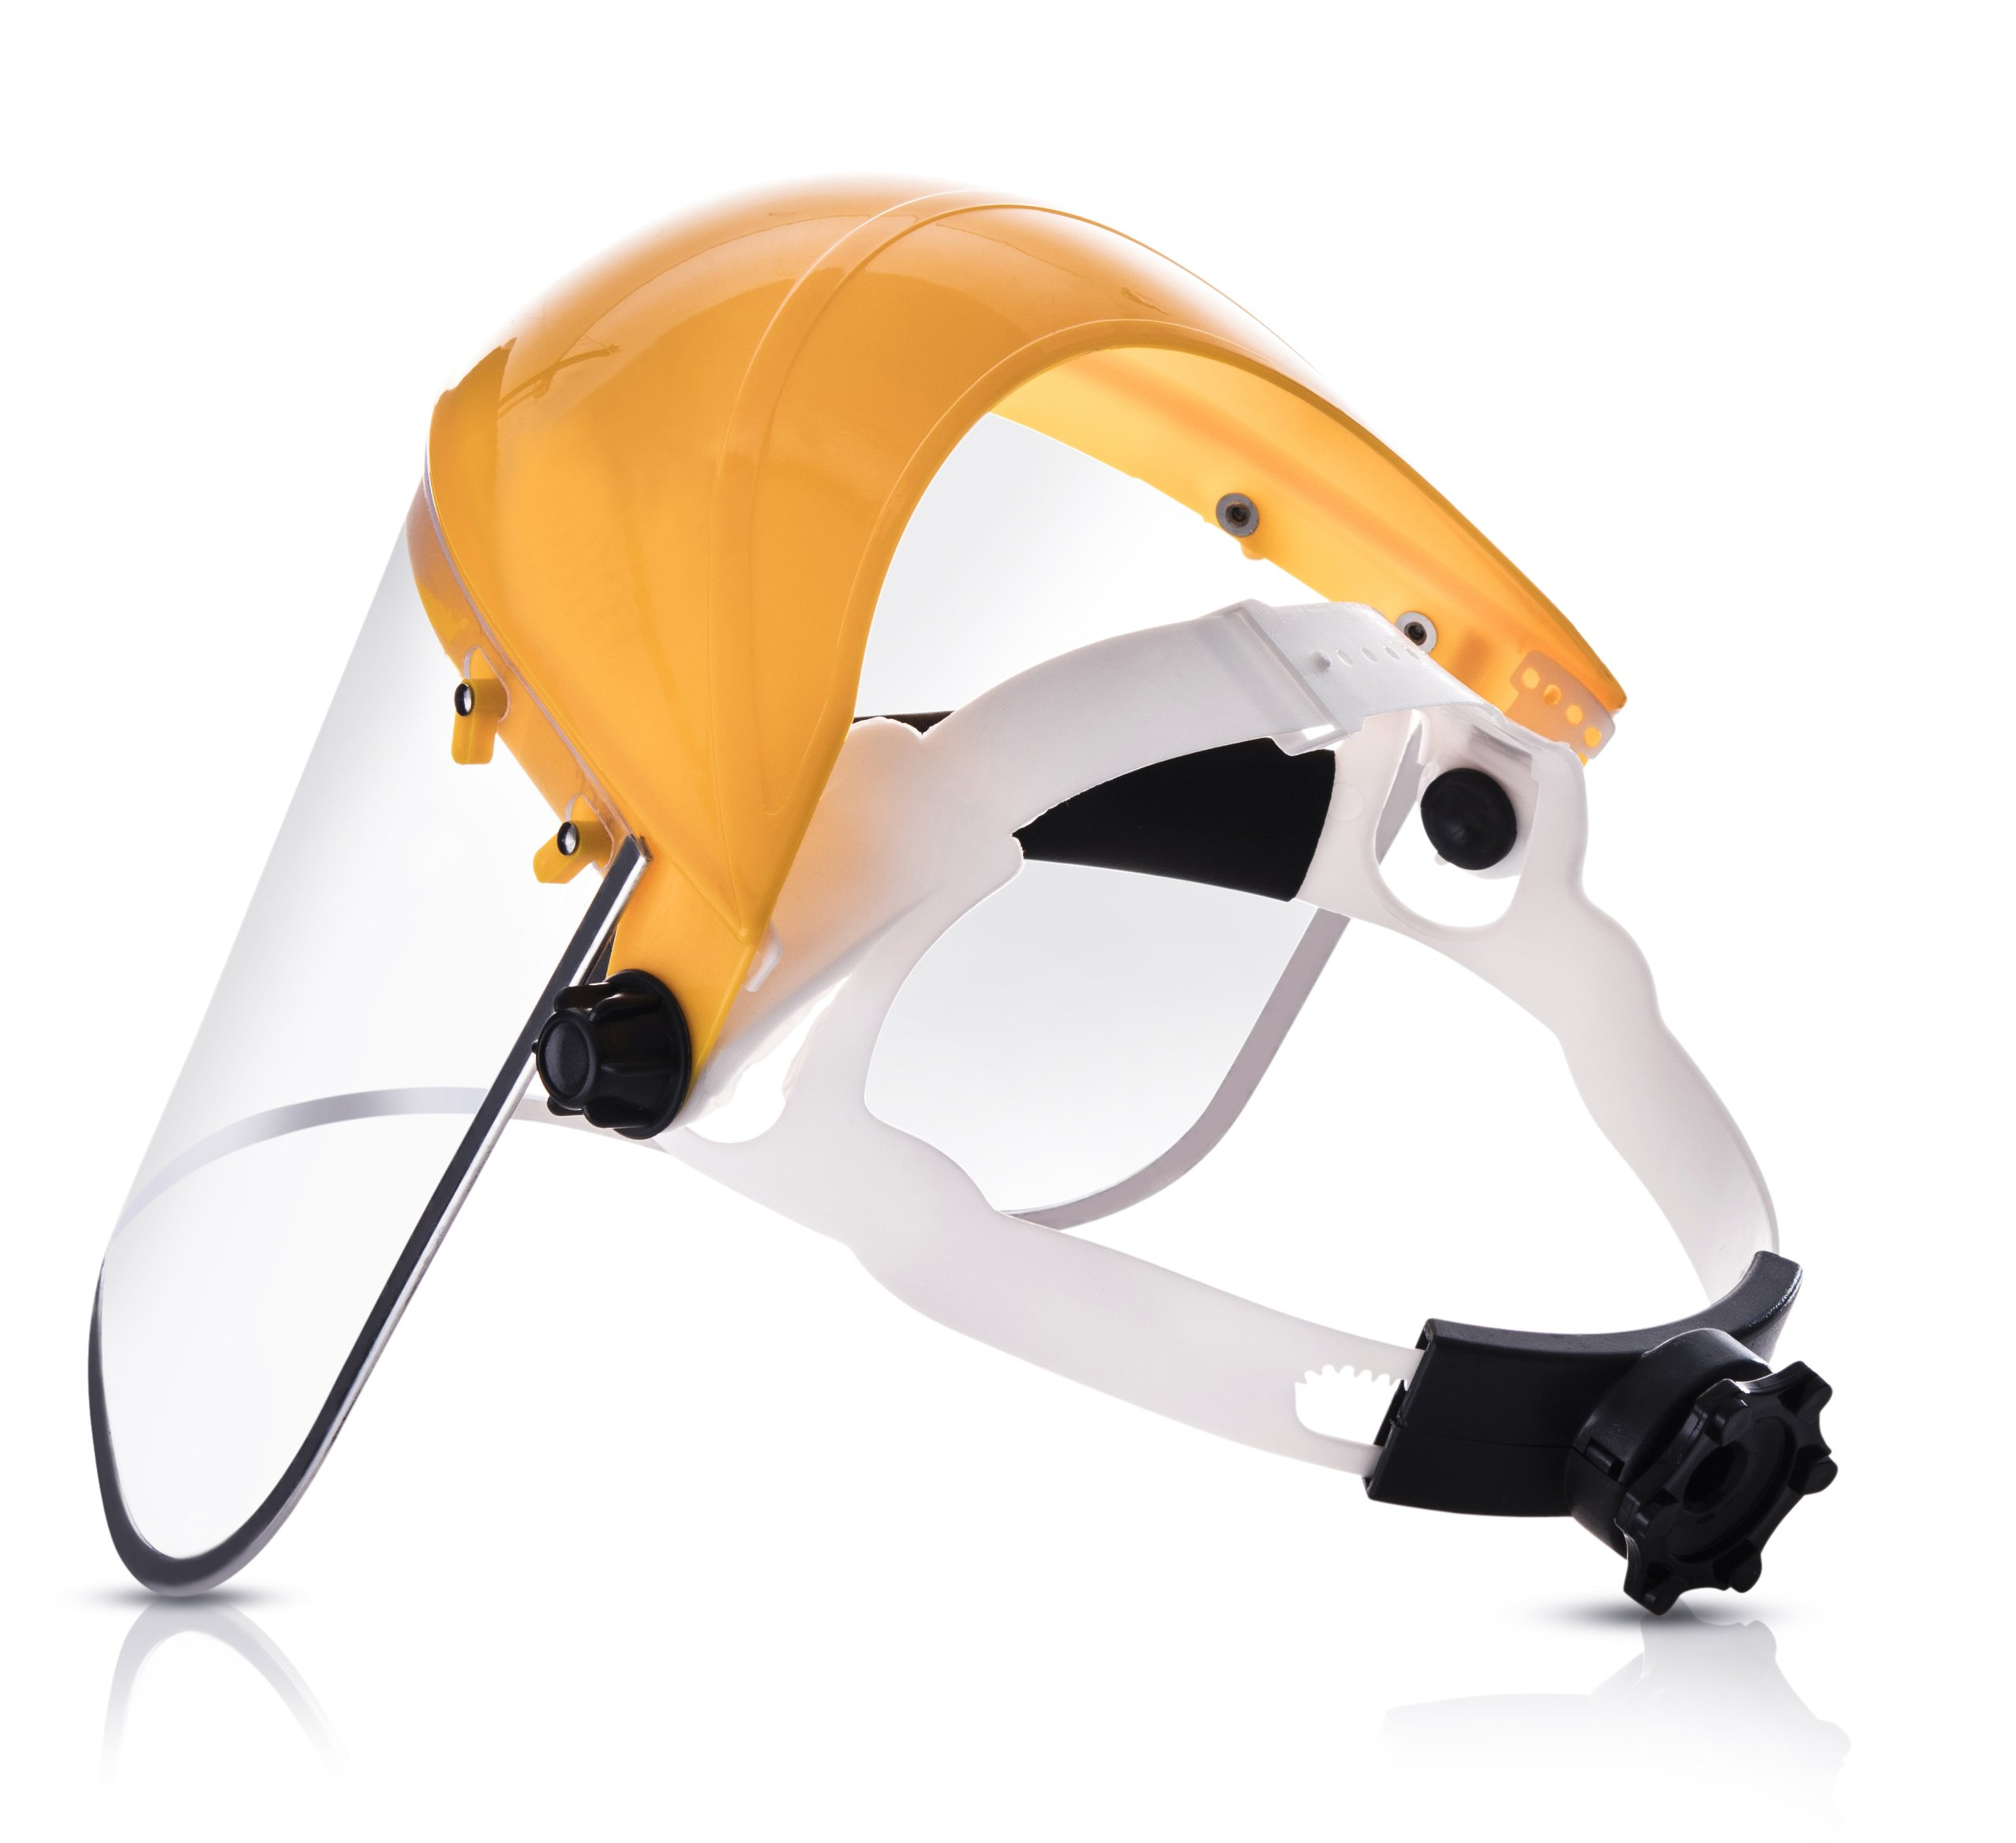 Katzco Clear Full Face Shield Visor Mask - Face And Head Coverage- Ideal For Automotive, Construction, General Manufacturing, Mining, Oil/Gas Uses by Katzco